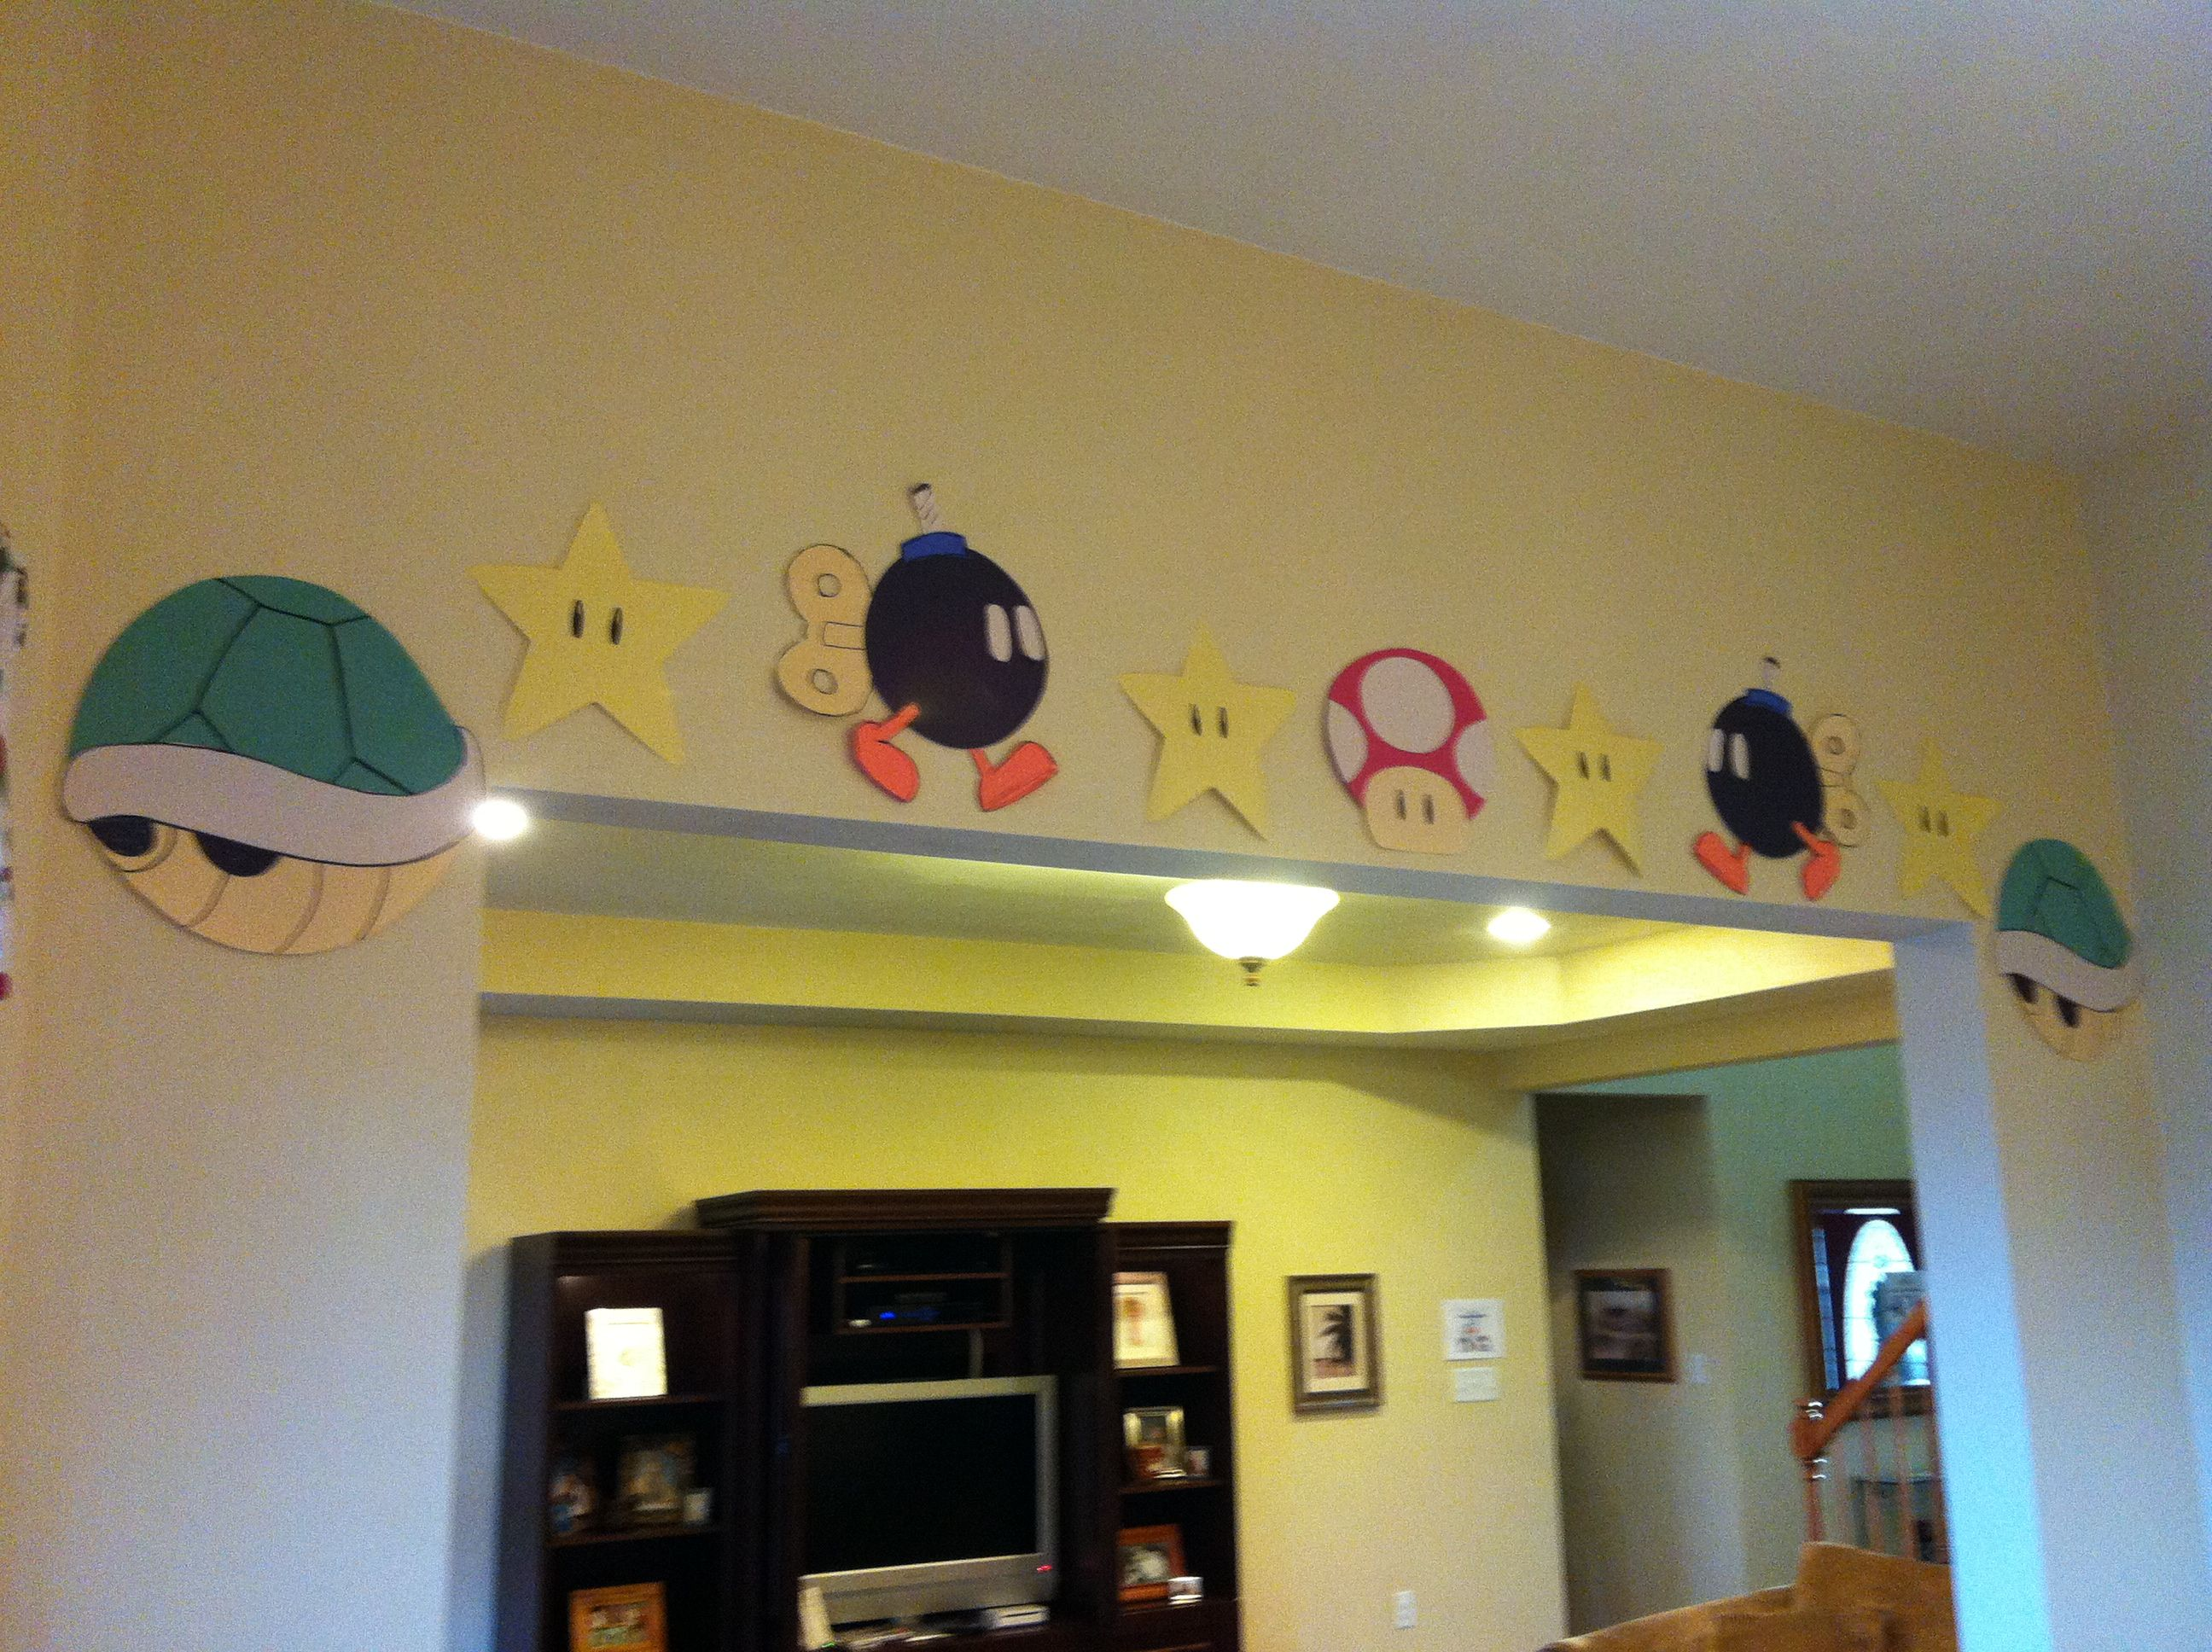 Super Mario Bros Decorations My grandson would kill for these in his room.